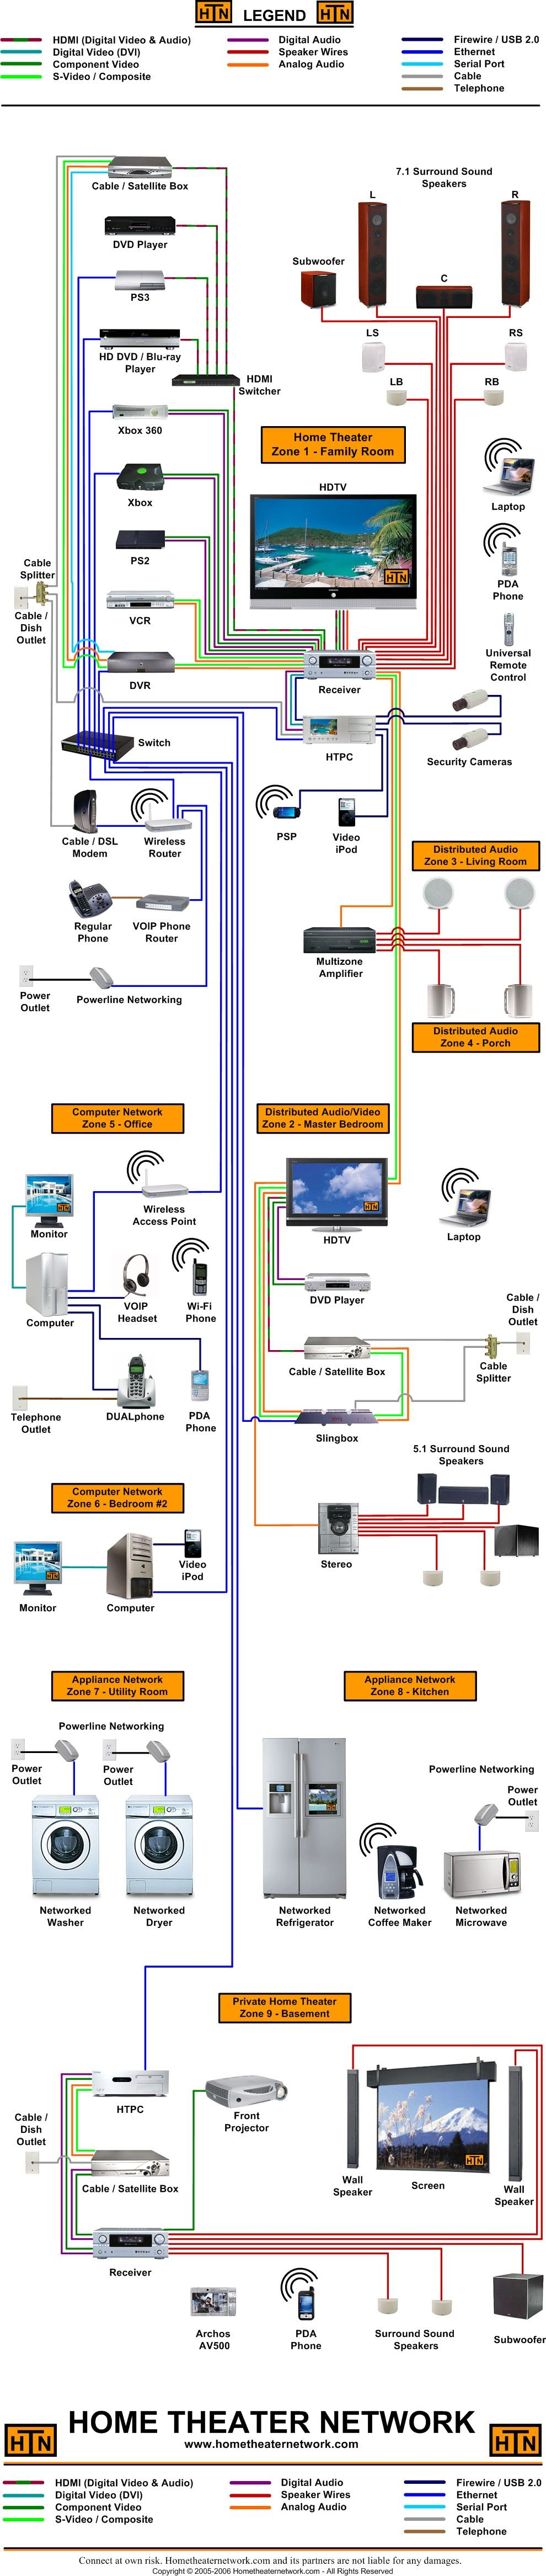 Home Entertainment Wiring Basics | Wiring Diagram on home theater diagrams hdmi, home theater hookup diagrams, home theater wire, home theater dimensions, home theater design, home theater seats, simple home theater diagram, home theater receivers, circuit diagram, home theater switch, home theater connections, home theater connector, home theater furniture, home theater lighting, home theater guide, home theater speakers diagram, home theater tools, home theater chairs, home theater drawings, home theater setup diagram,